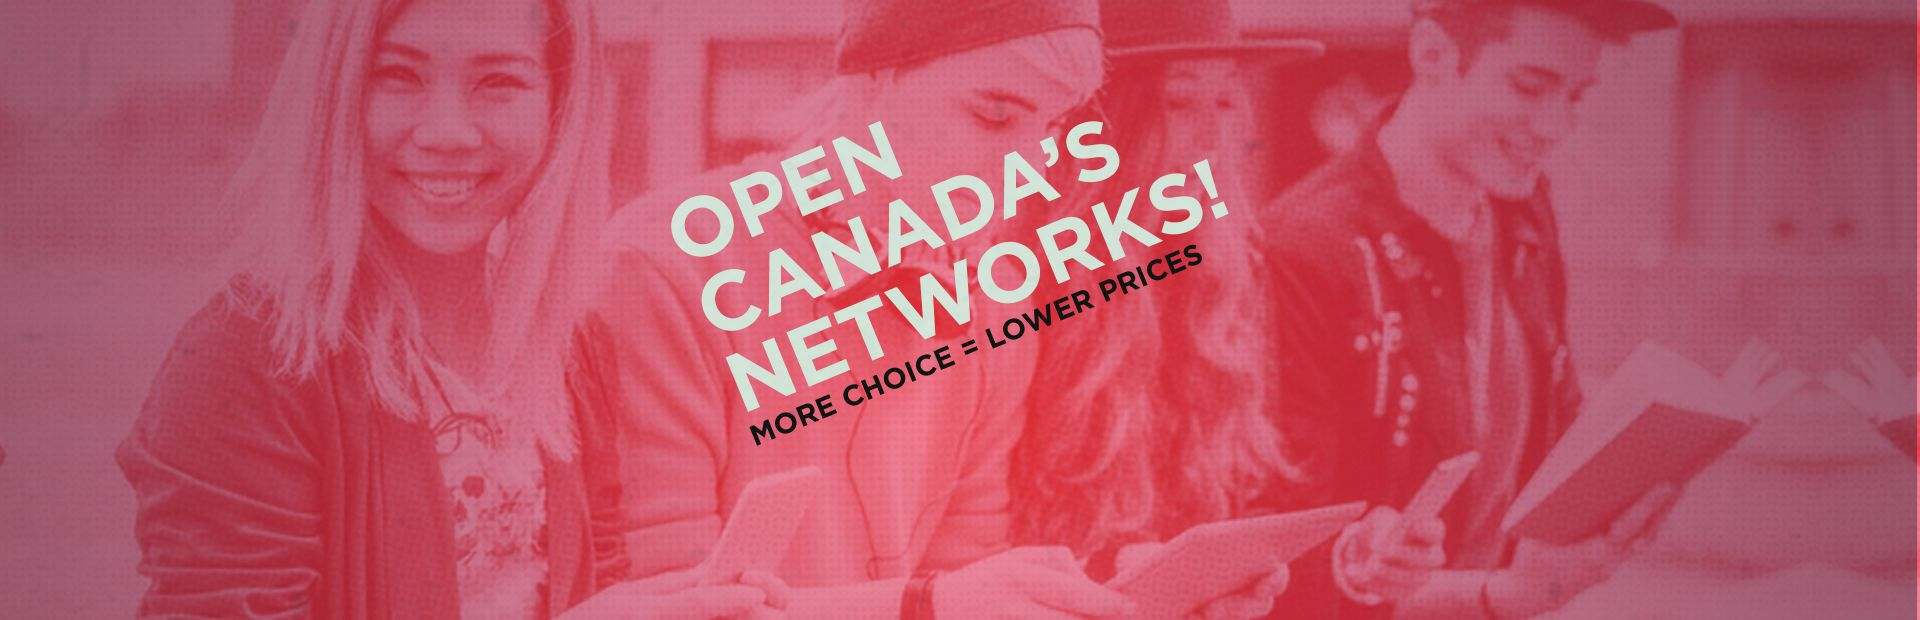 Open Canada's Networks: More Choice = Lower Prices